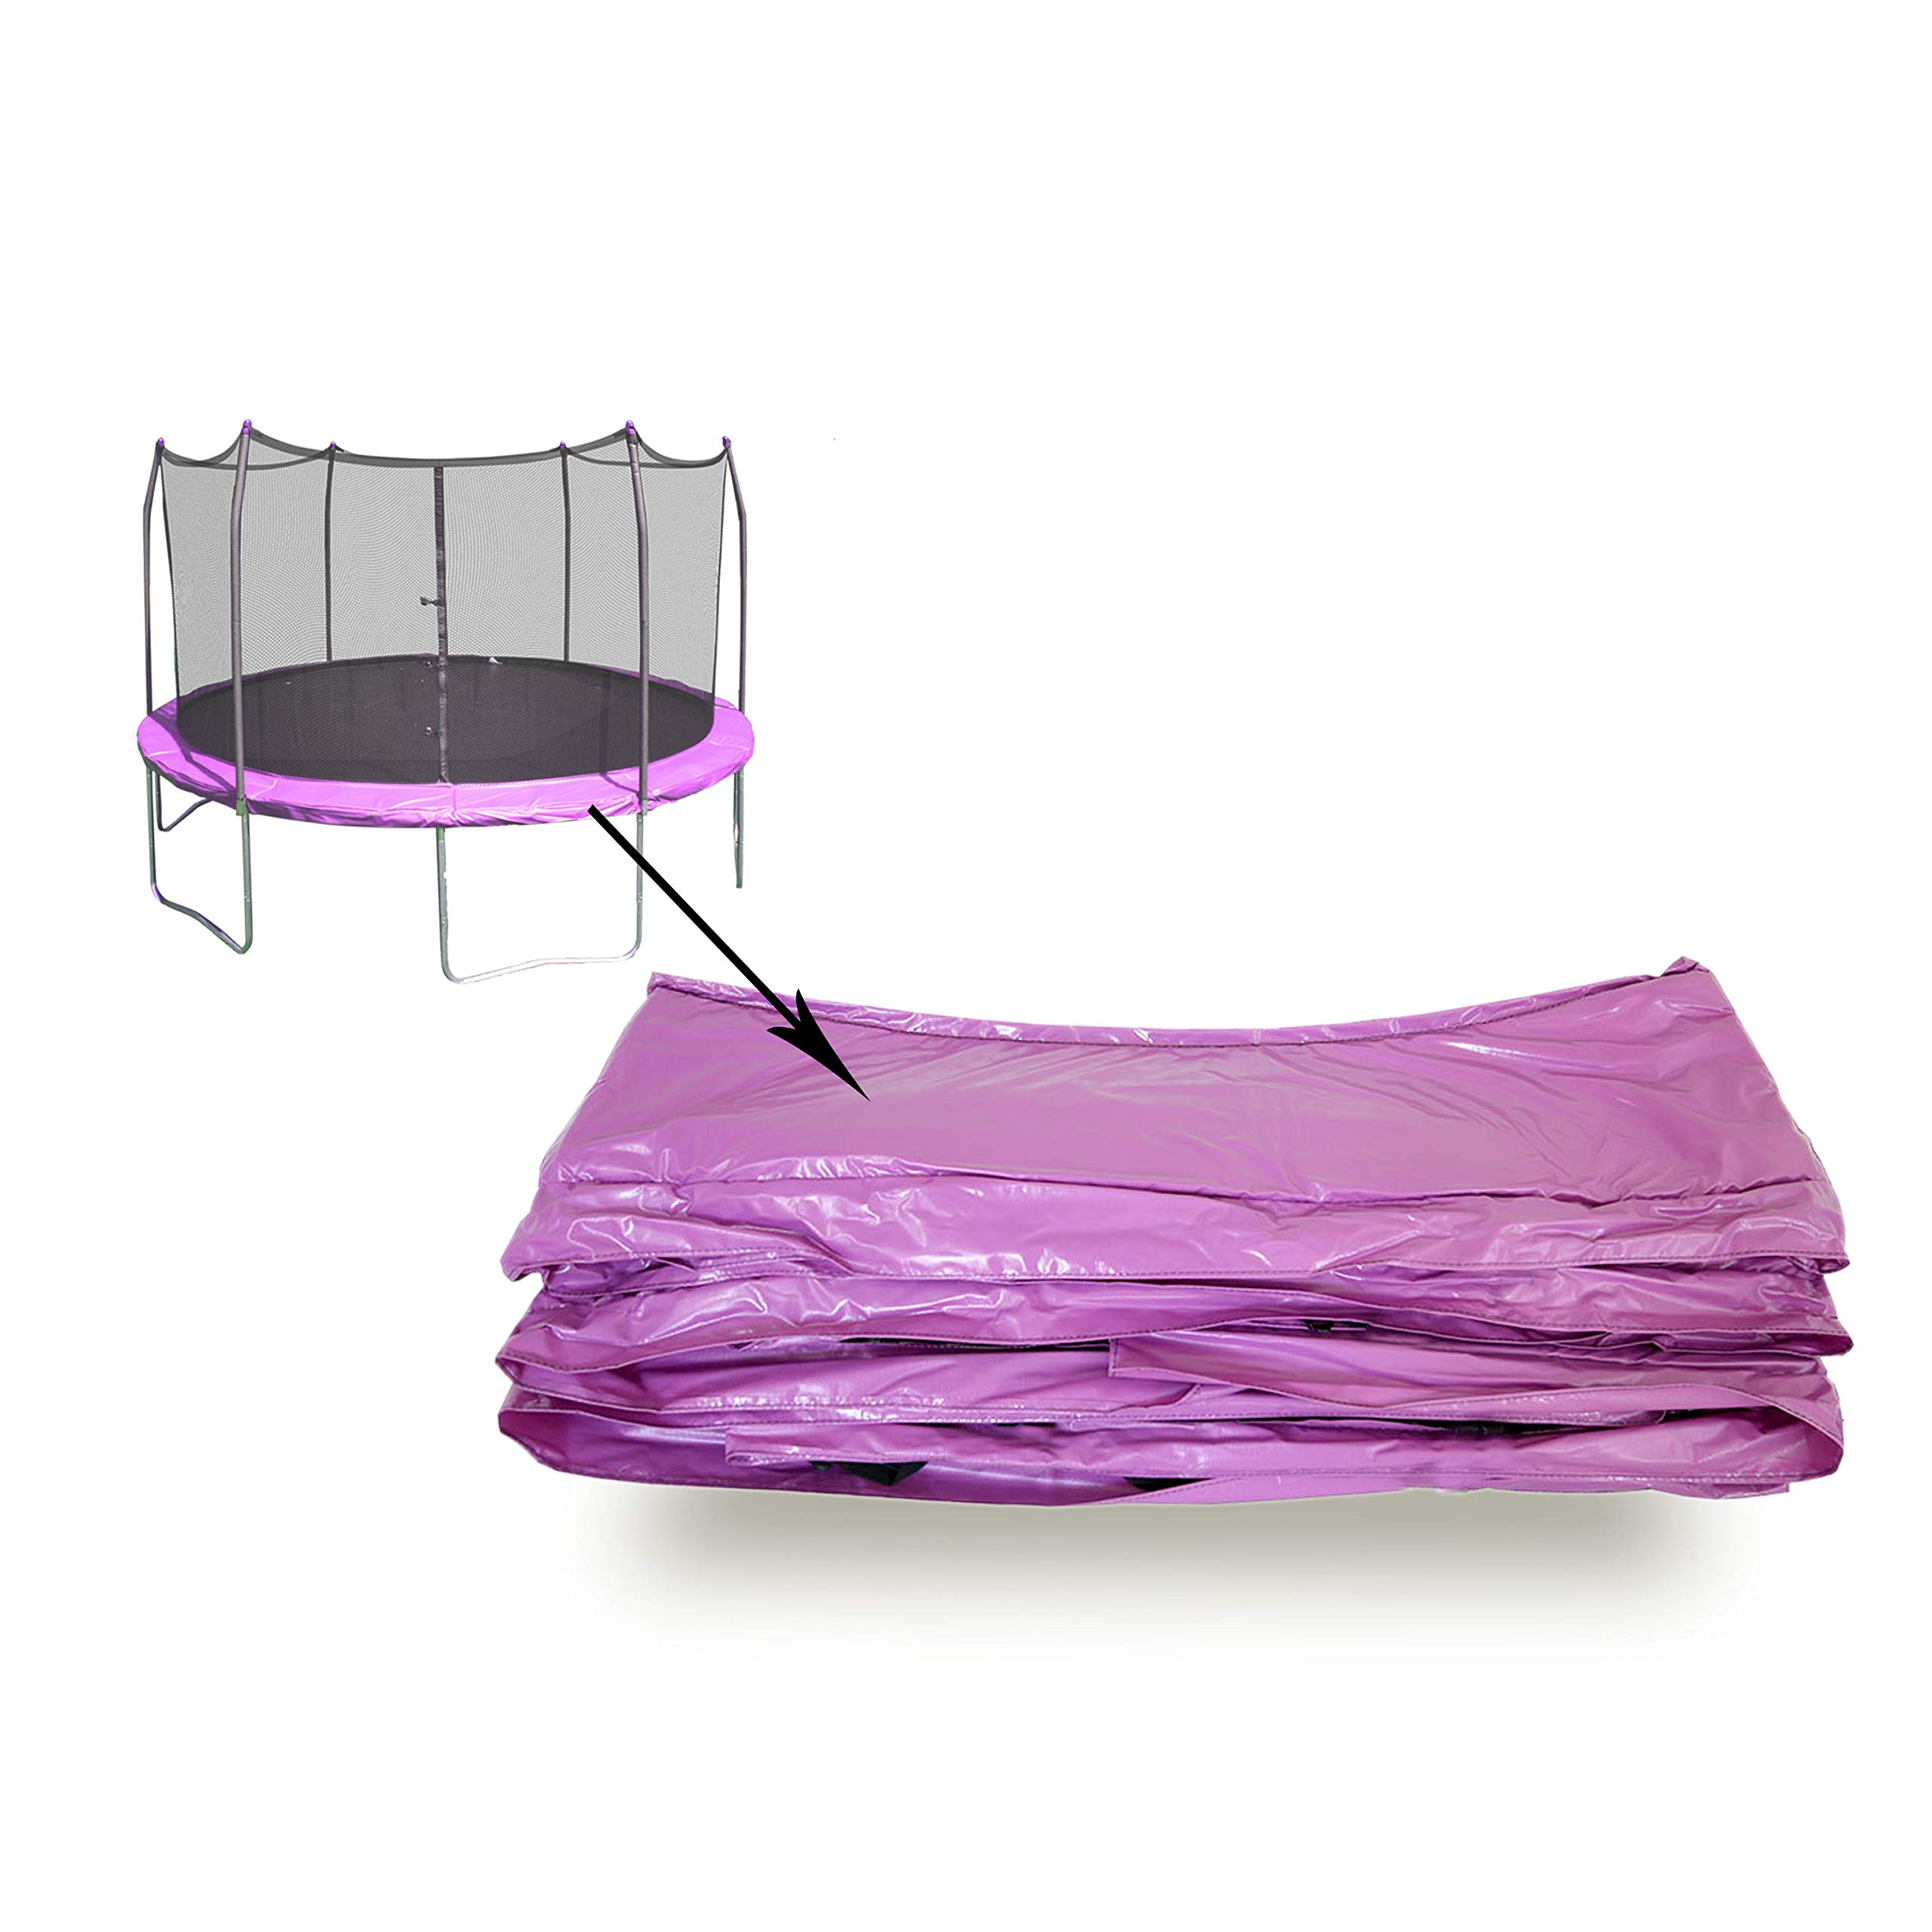 Skywalker Trampolines Purple 12' Round Spring Pad by Skywalker Trampolines (Image #2)